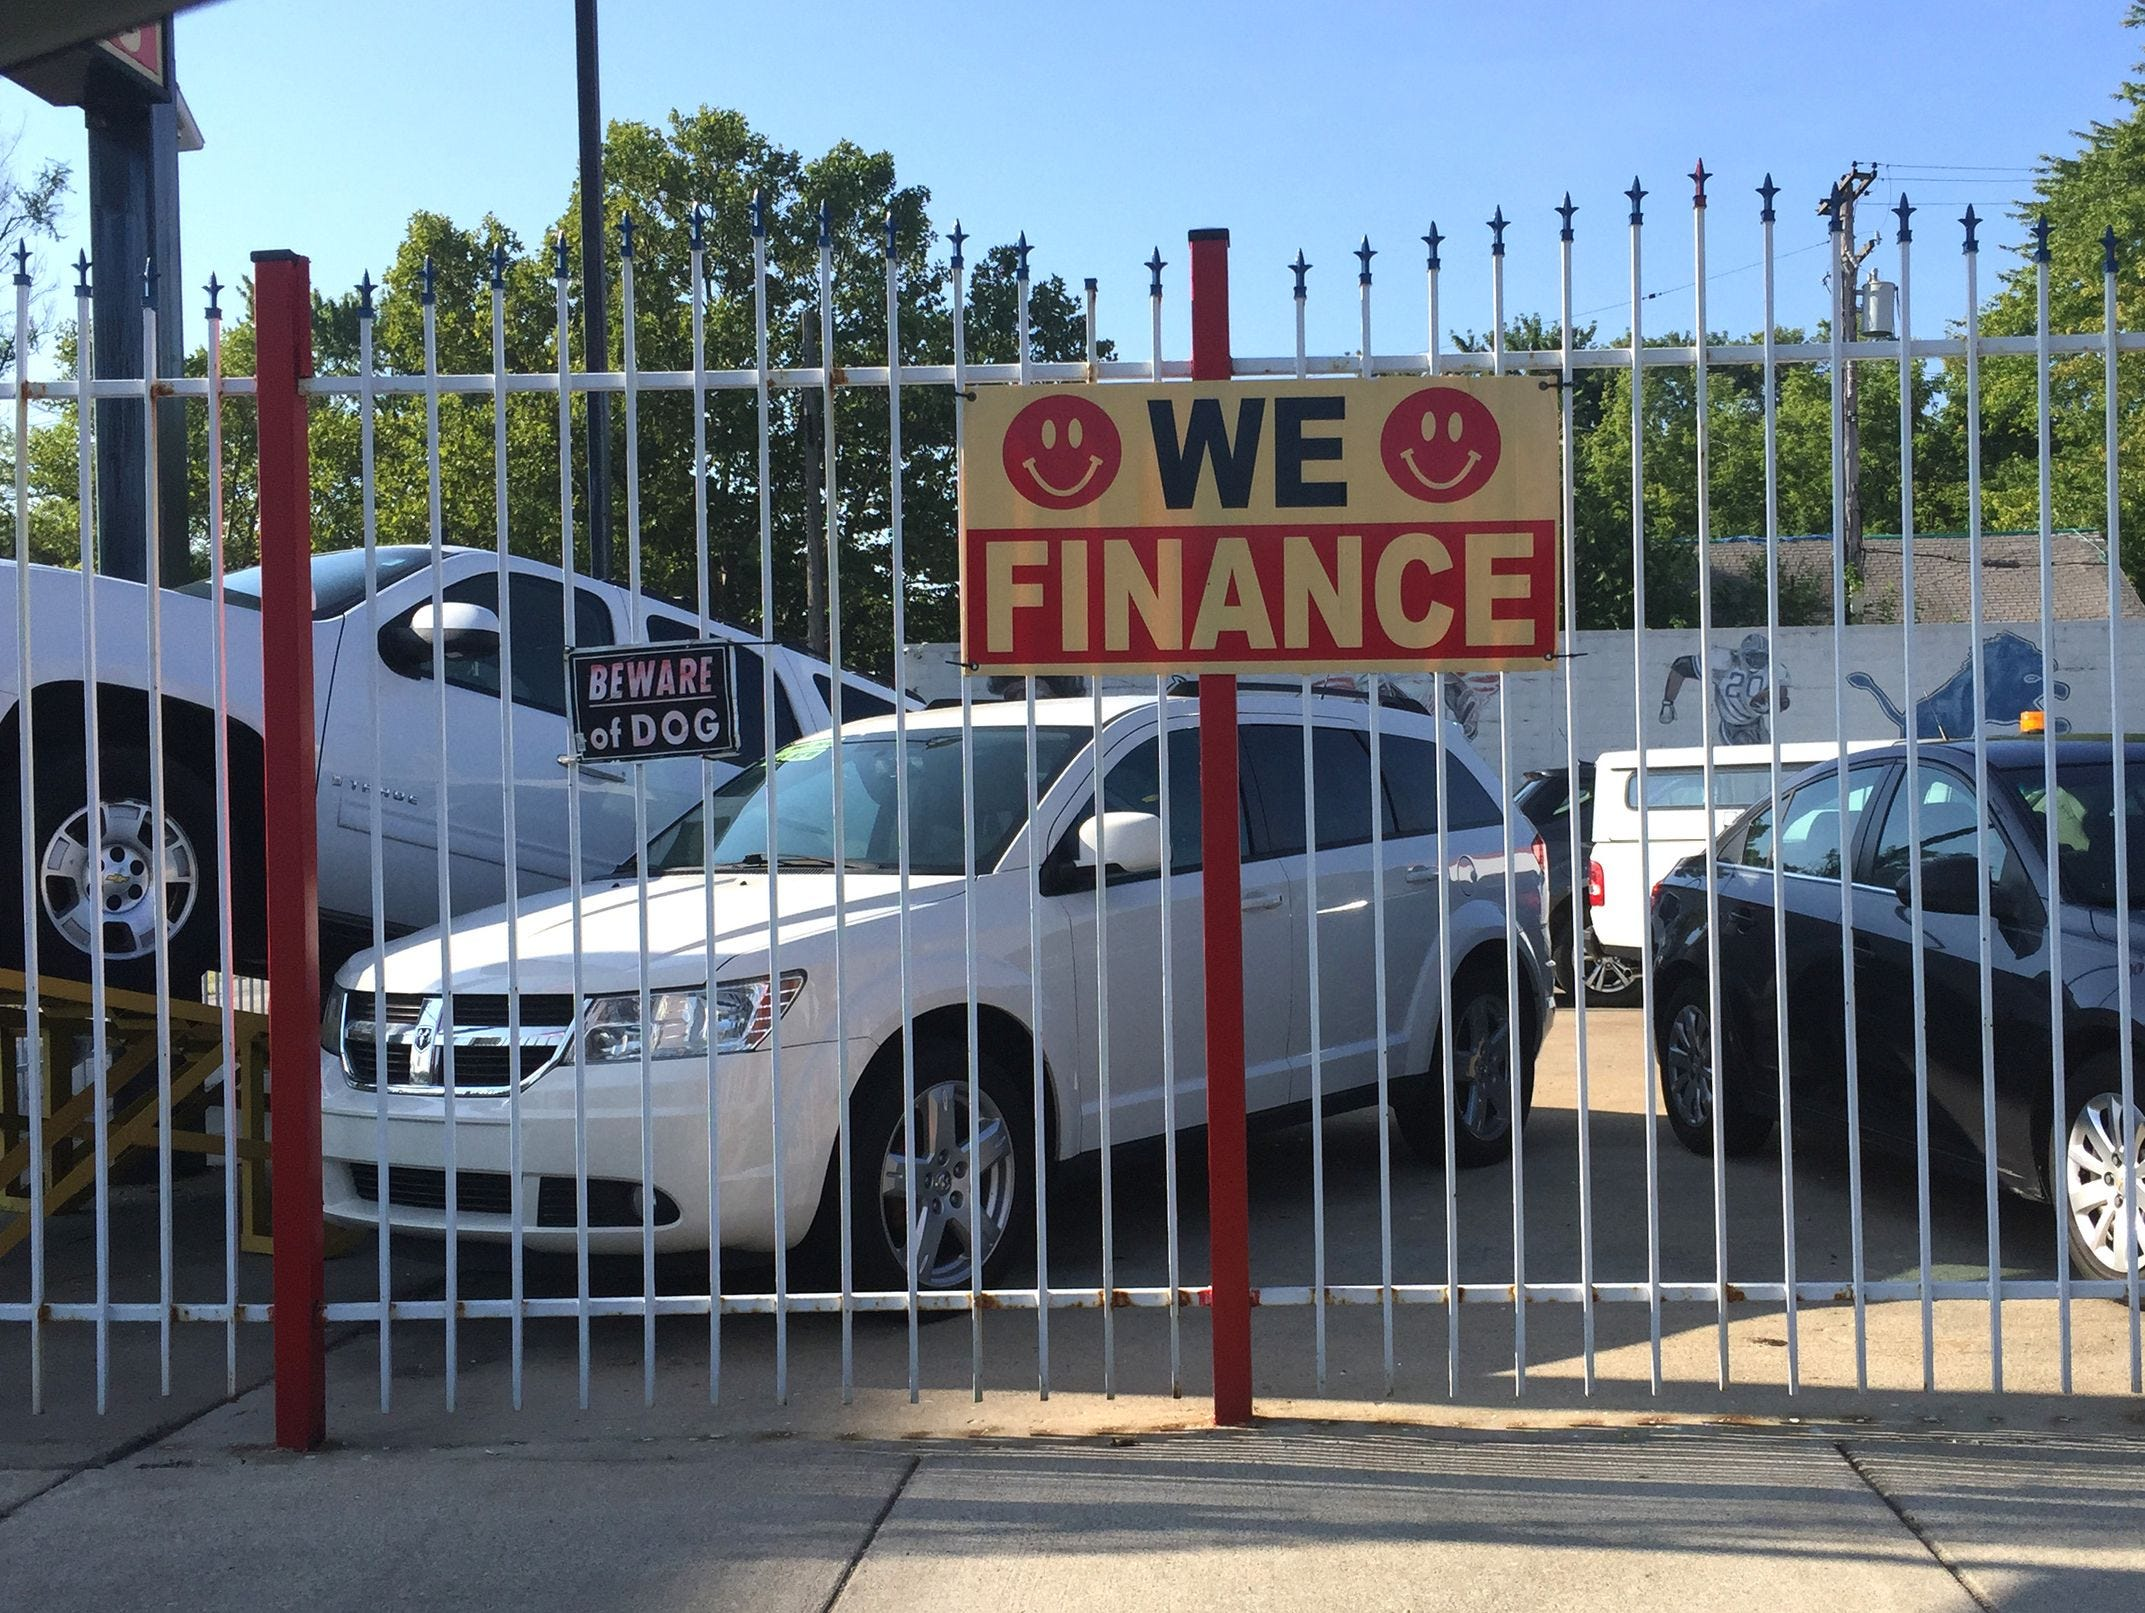 Borrowers with risky credit may face more hurdles when it comes to getting car loans after the COVID-19 recession.